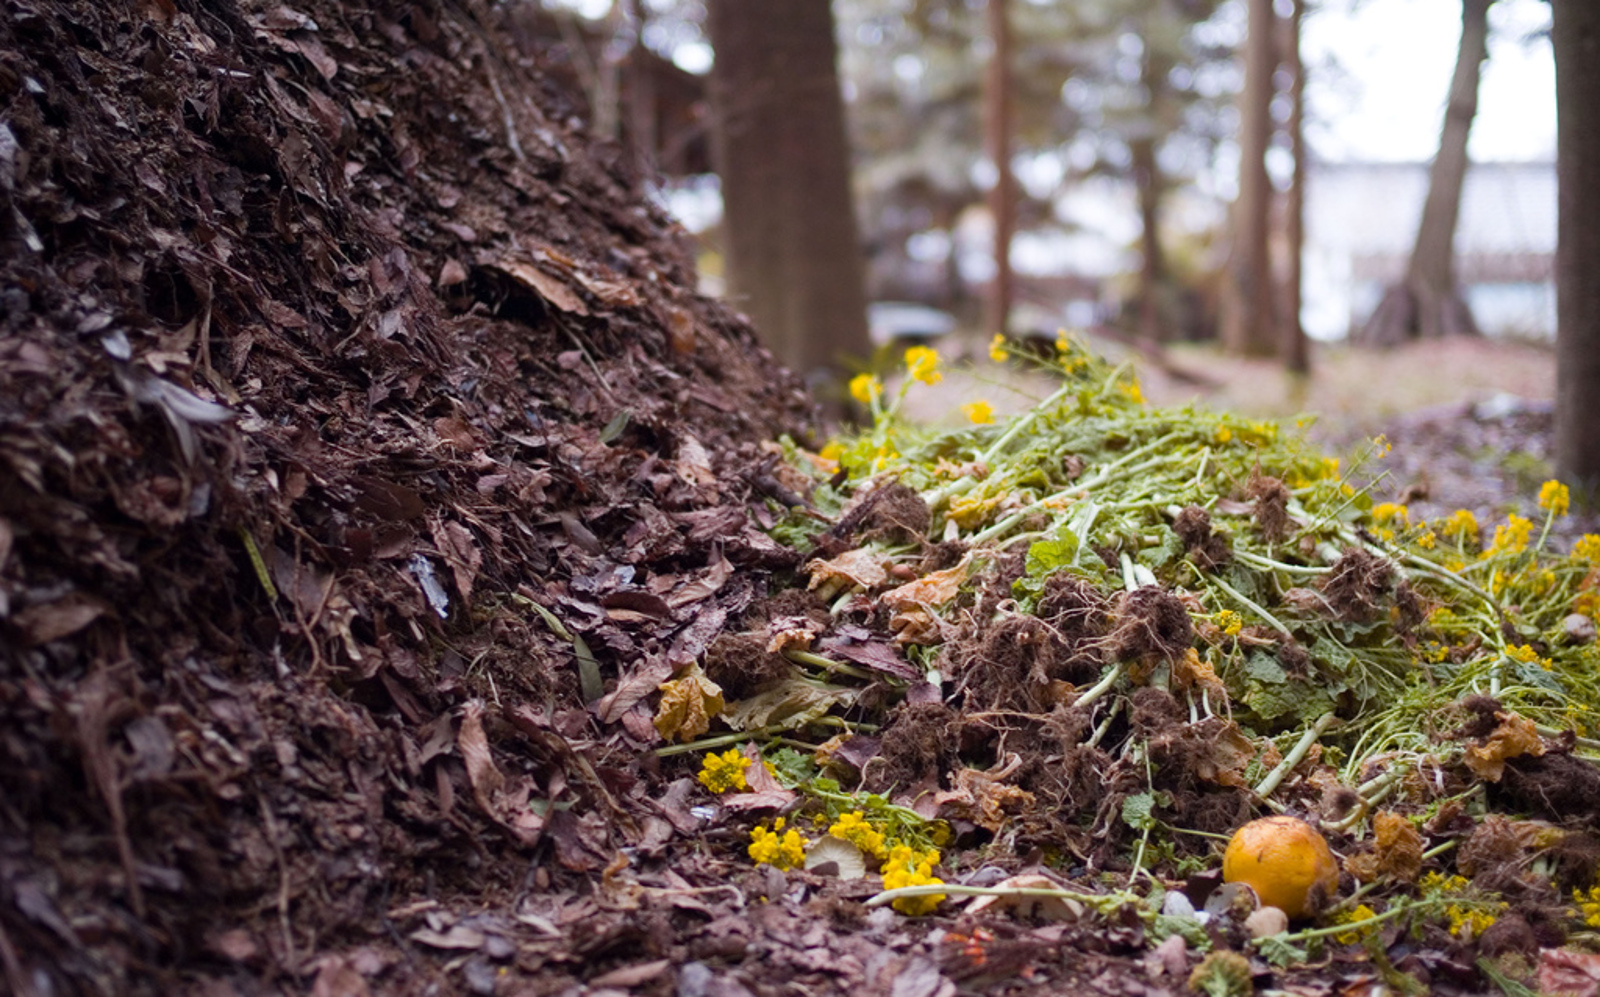 7 Things to Do With Compost if You Don't Garden